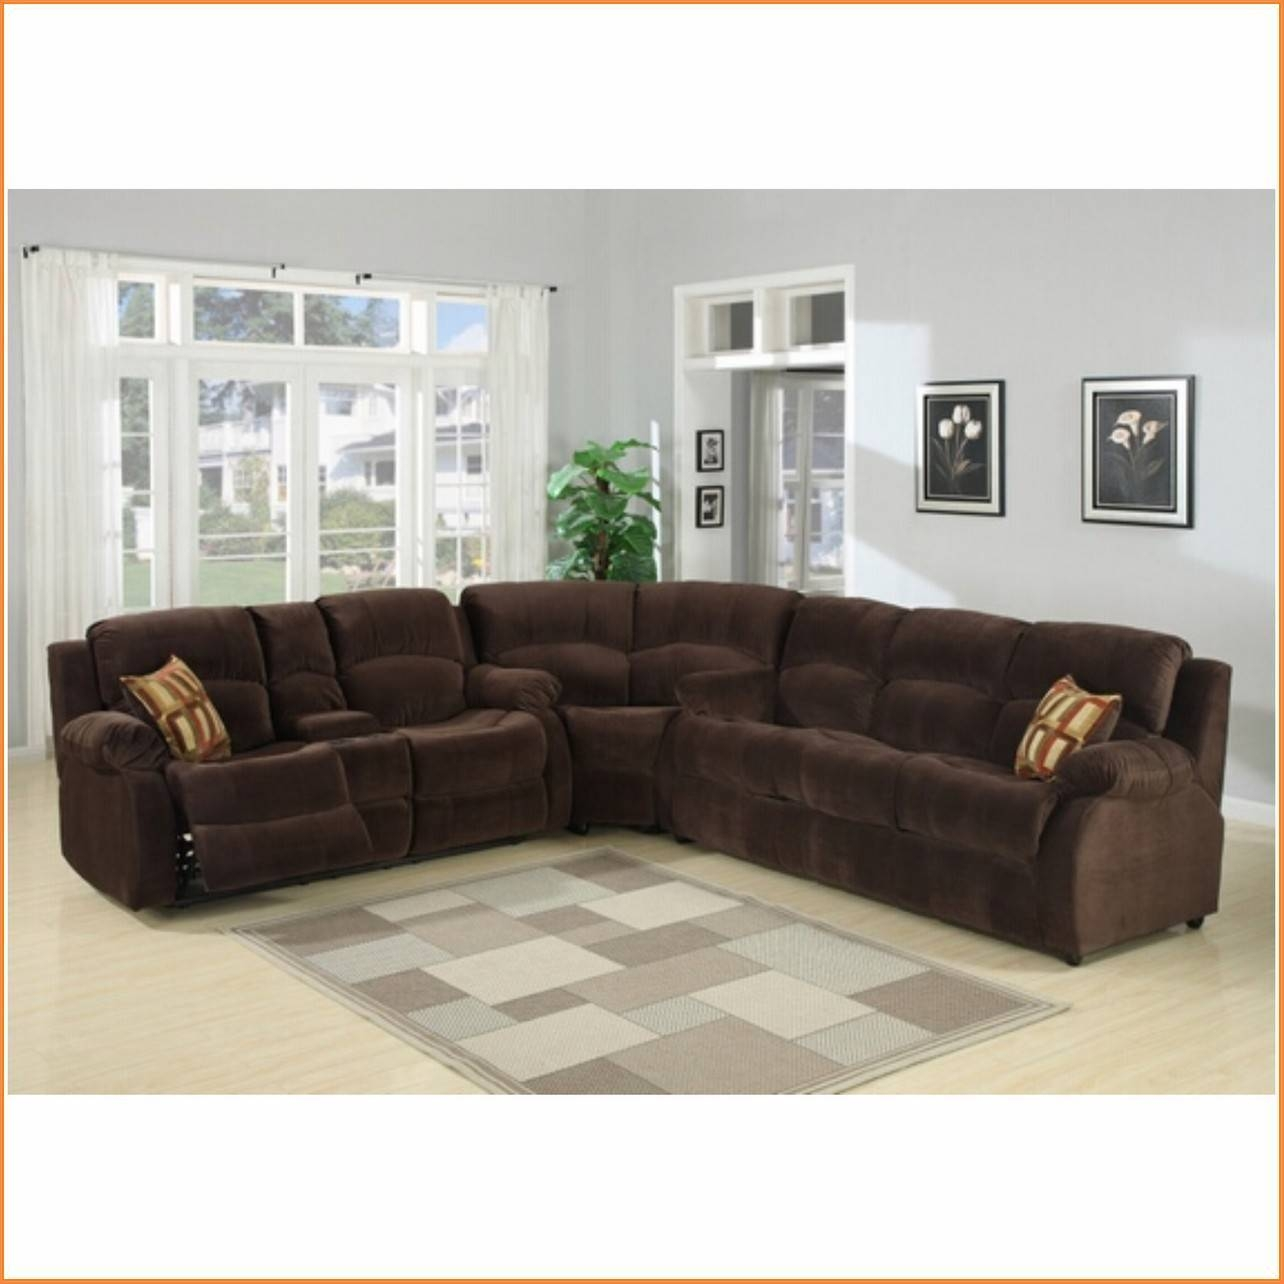 Sofa : Queen Sofa Sleeper Sectional Microfiber Amazing Home Design throughout Queen Sofa Sleeper Sectional Microfiber (Image 17 of 25)